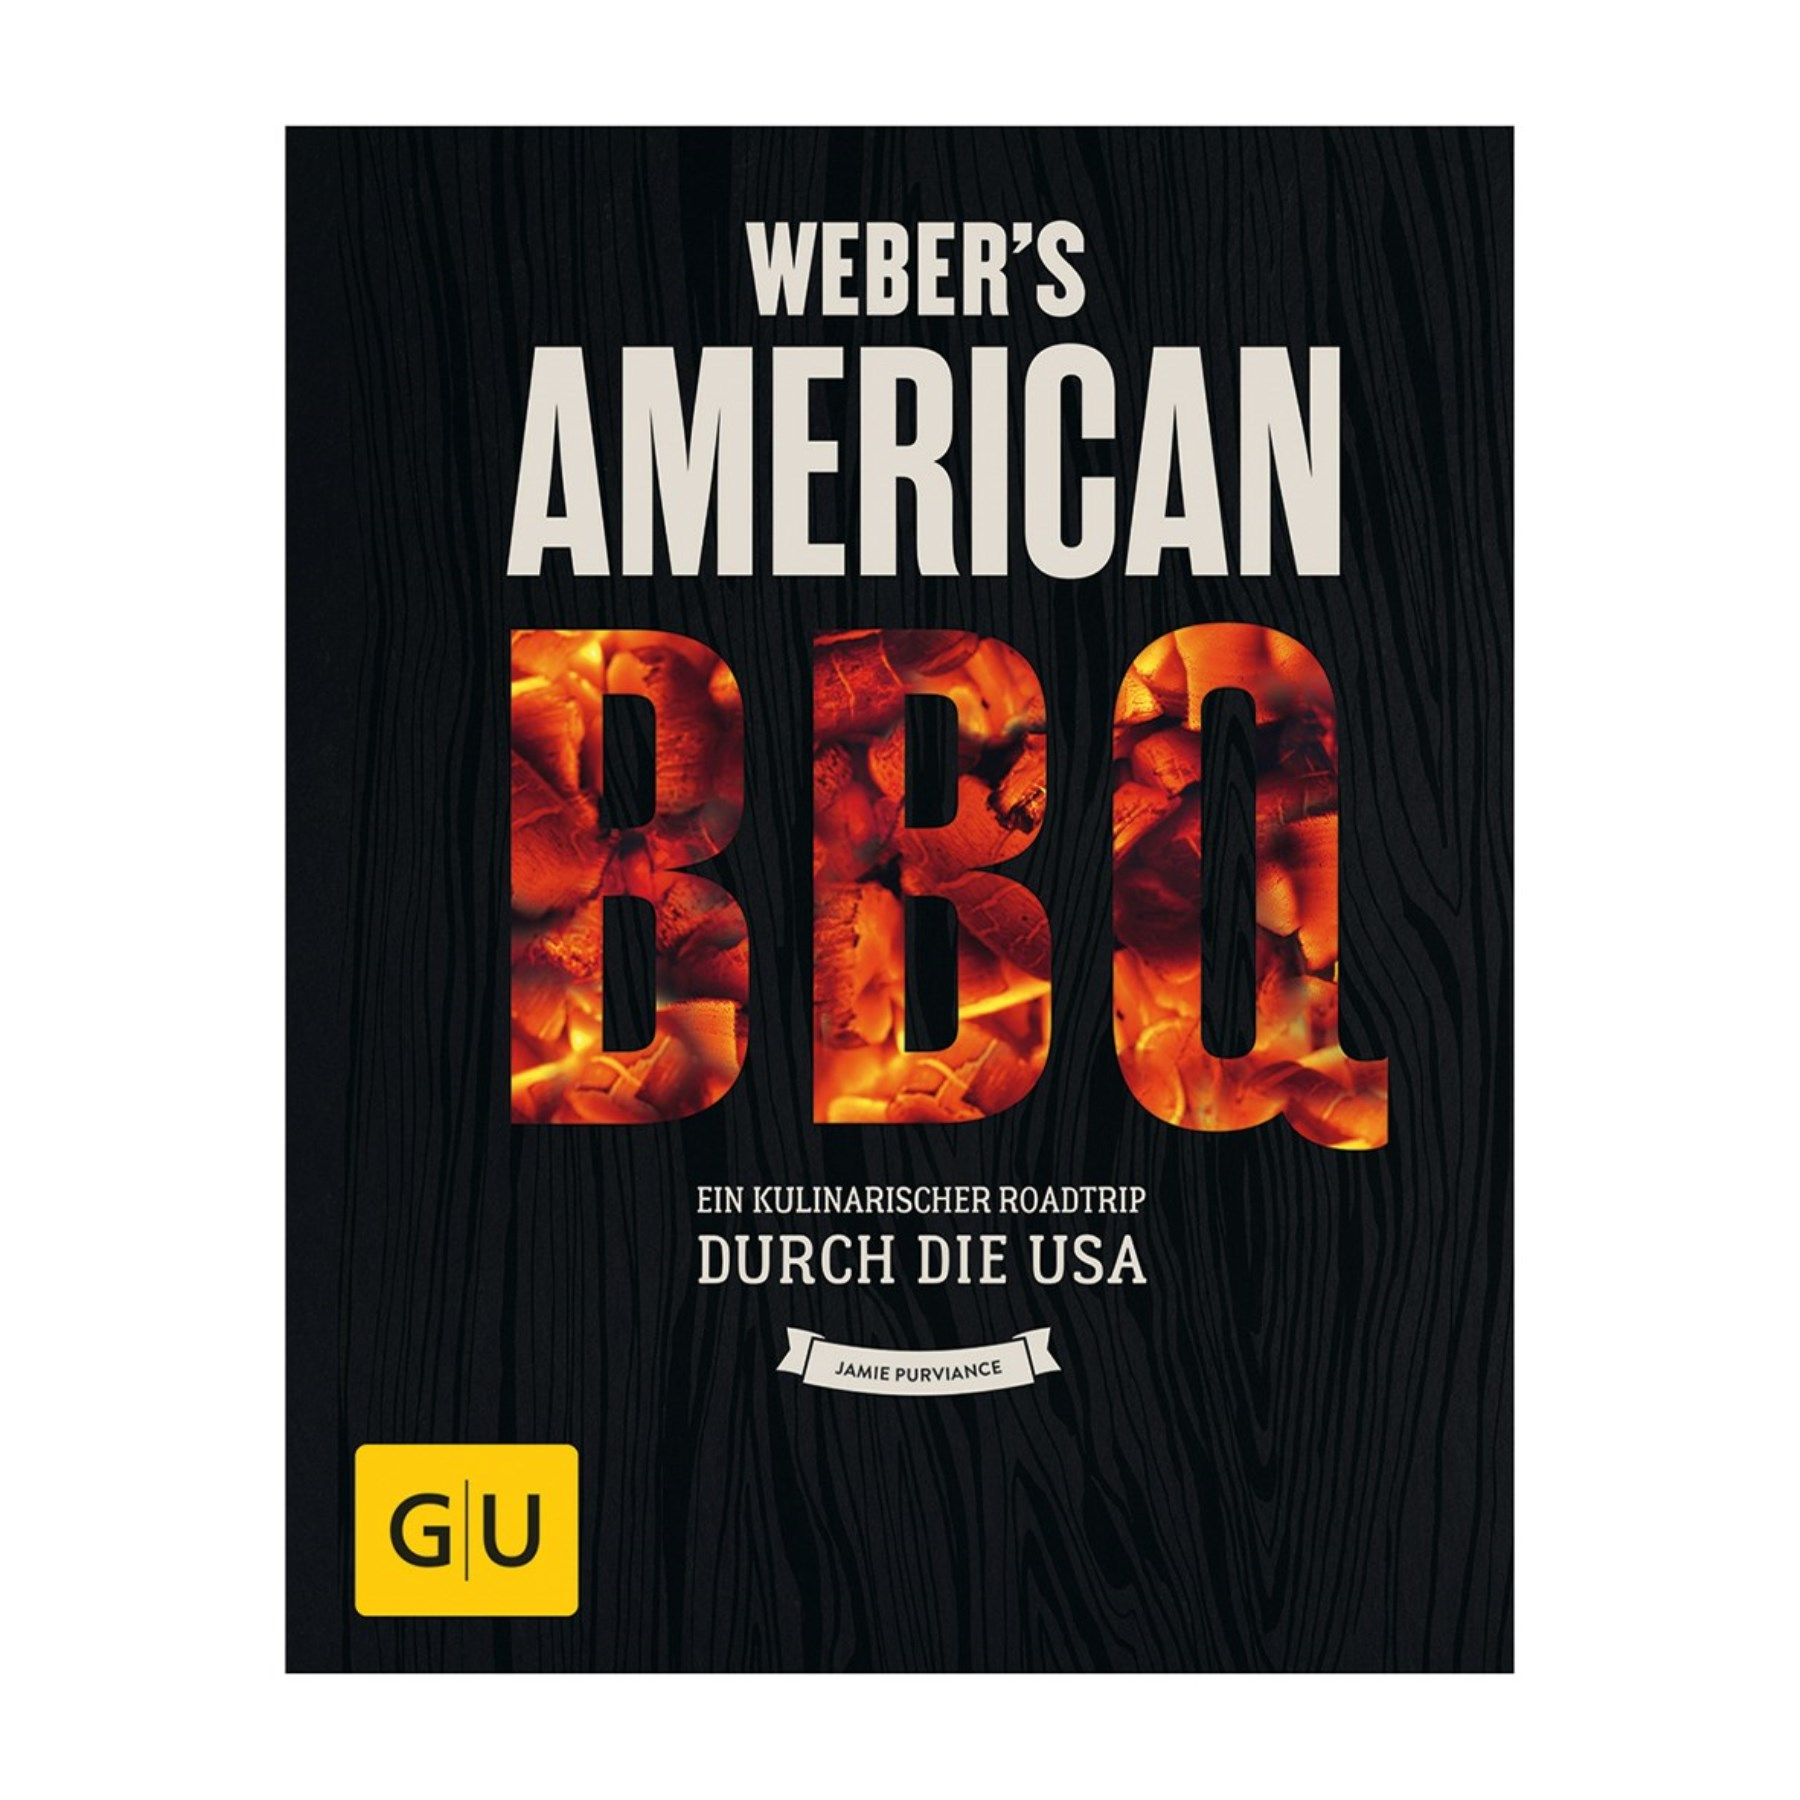 1233451 - Buch Weber's American Barbecue